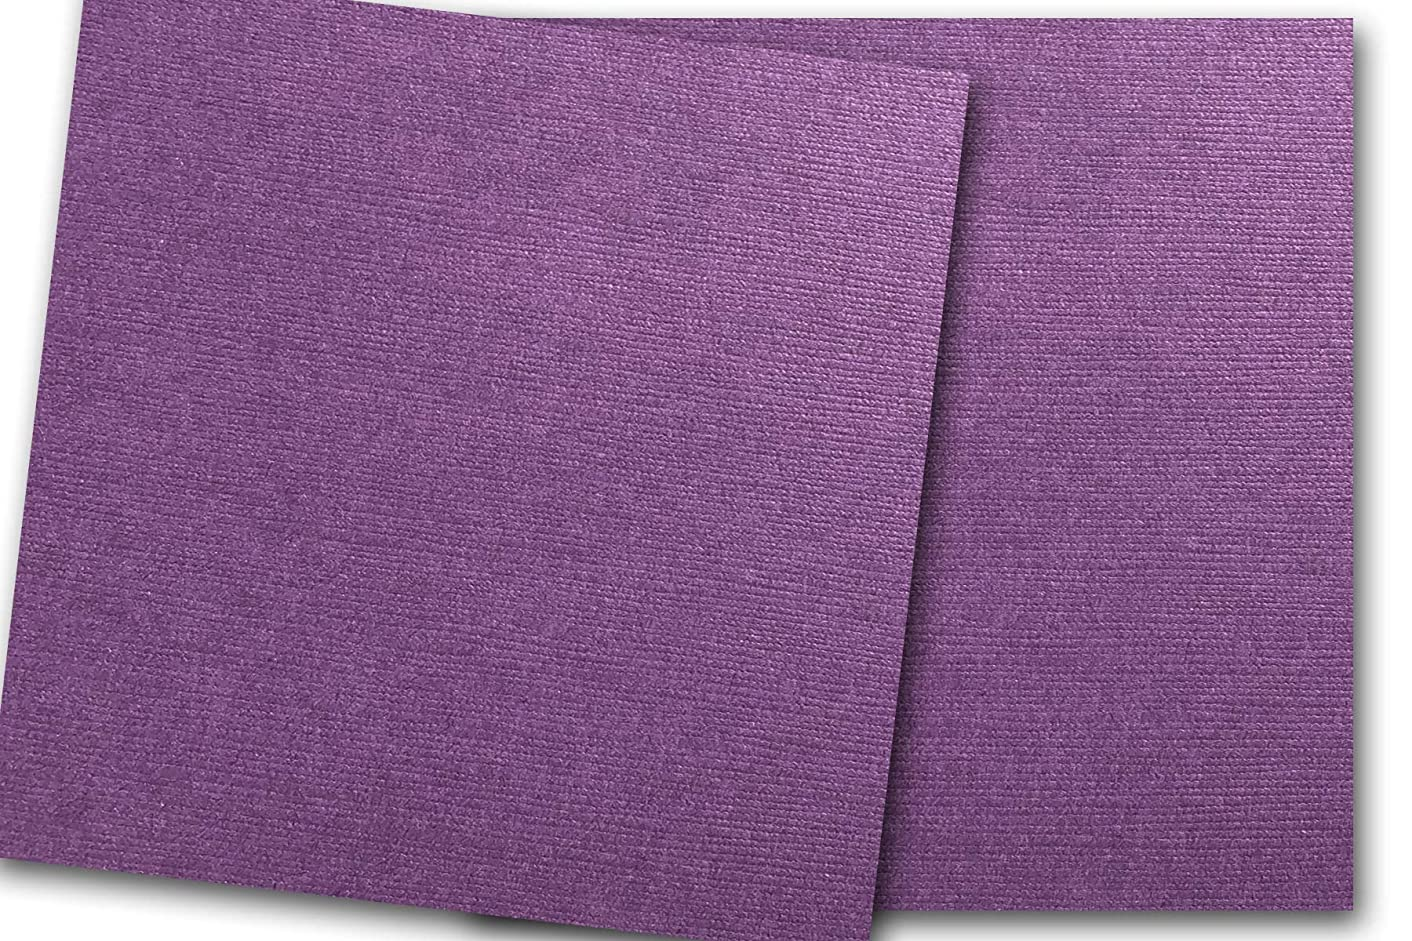 Premium DCS Canvas Textured Plum Purple Card Stock 20 Sheets - Matches Martha Stewart Plum - Great for Scrapbooking, Crafts, DIY Projects, Etc. (12 x 12)